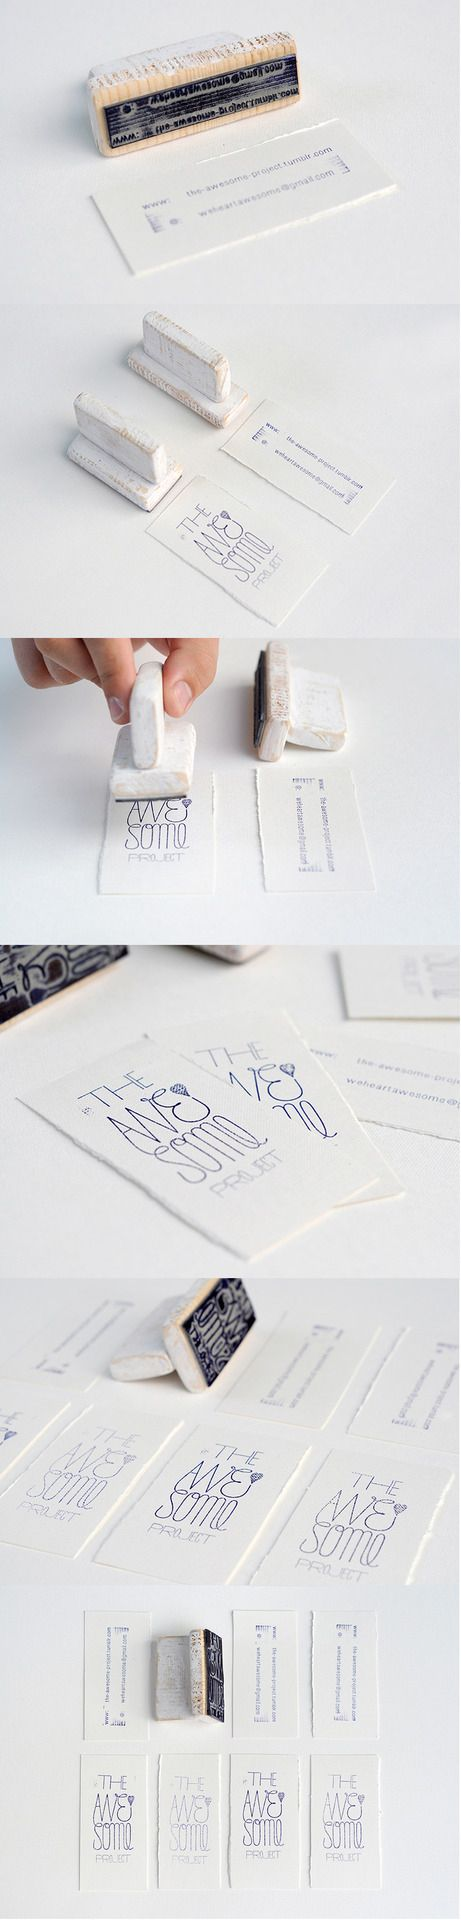 Hand-Made Awesome Business Cards | Card Observer